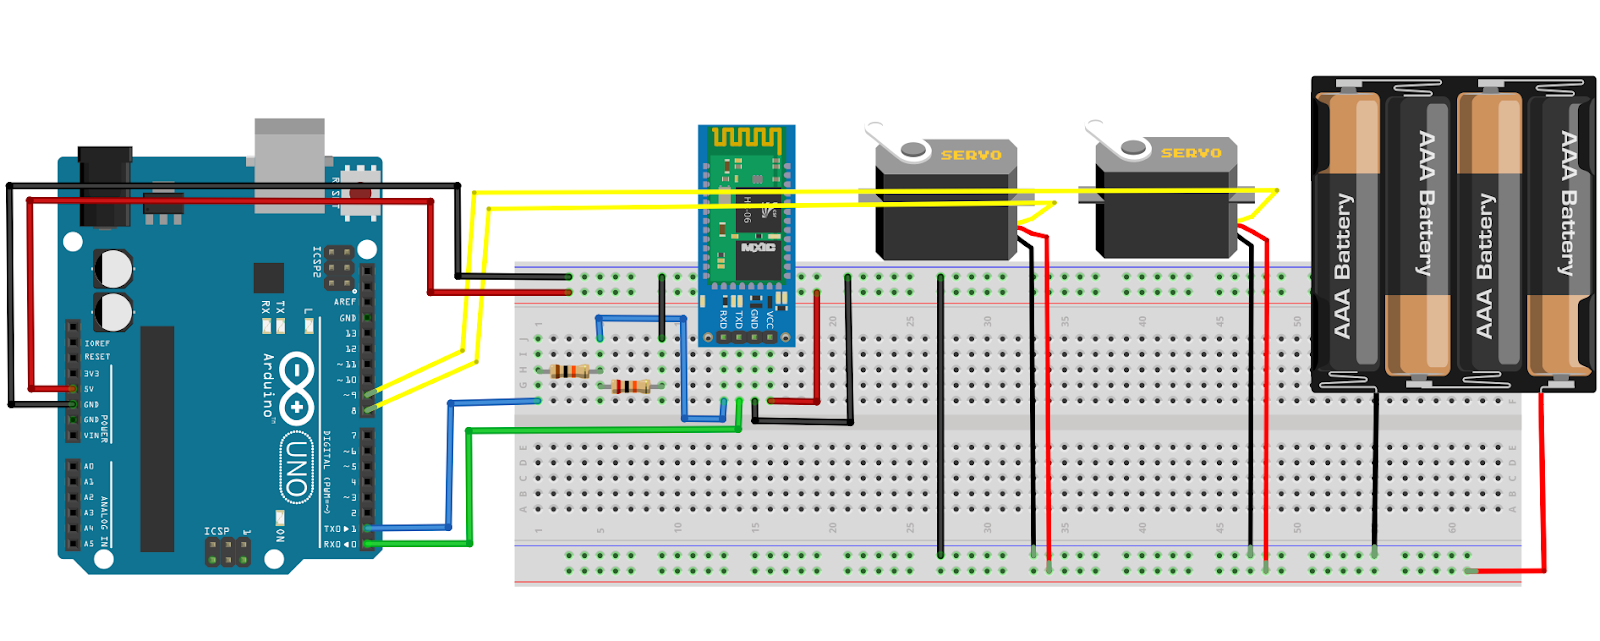 Arduino Pan Tilt Servo Motor Control Via Bluetooth Using Android App Circuit Diagram Of Device Schematic